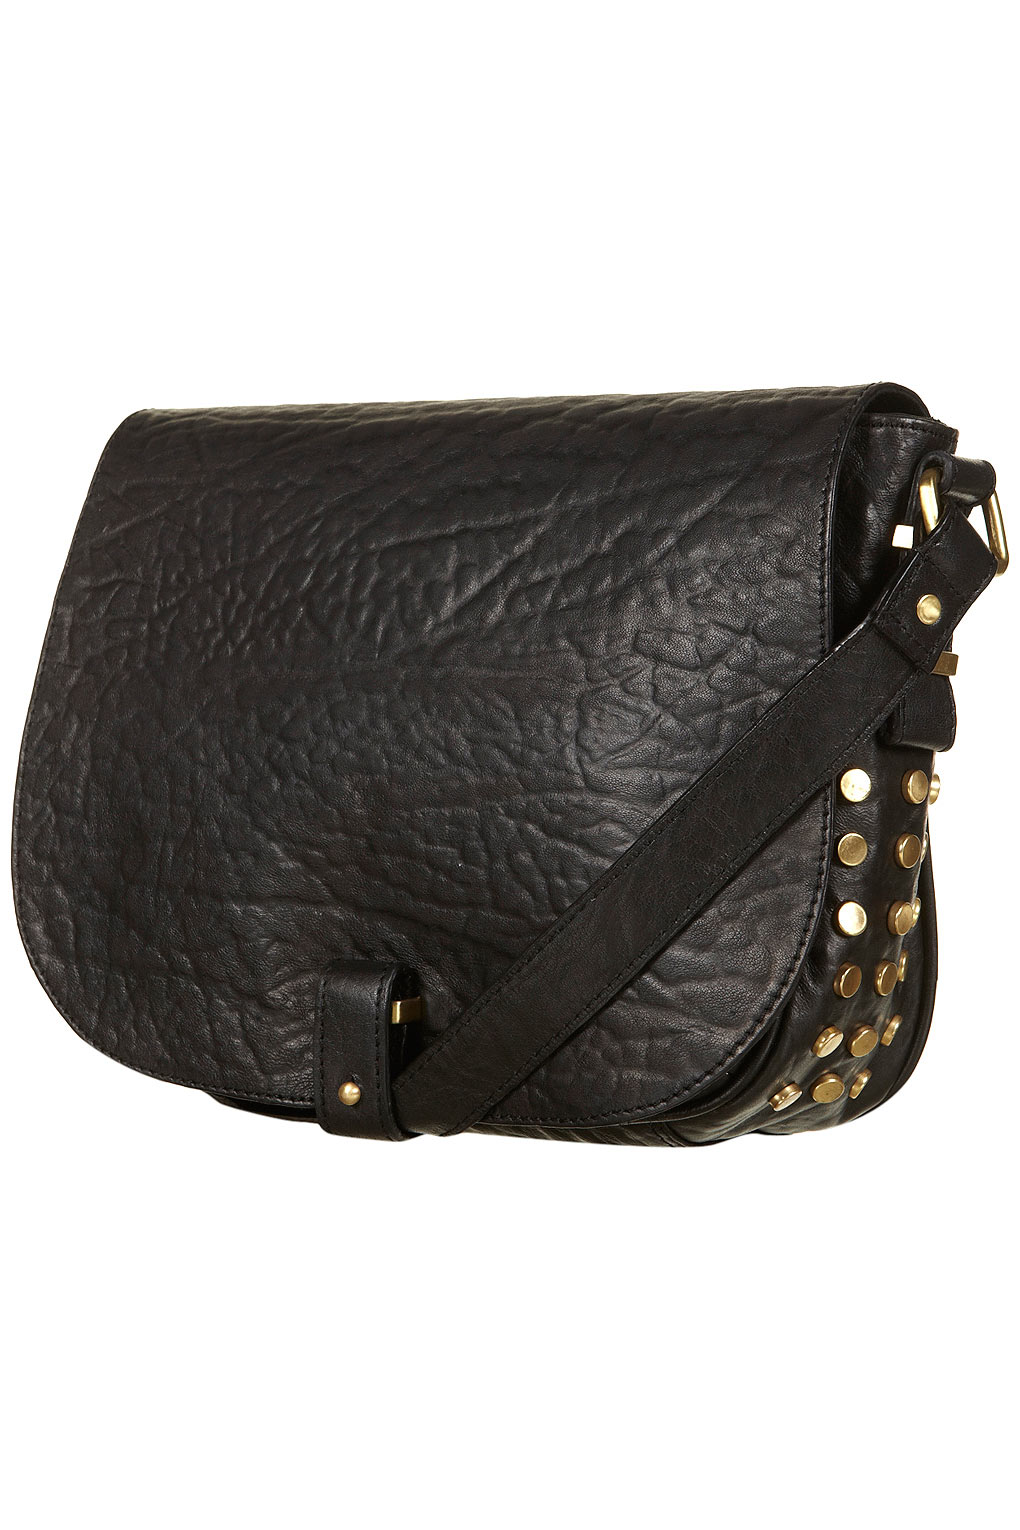 Black HandBags Girly Clutch HandBags Bag Girly Studs Trim The Romans devised a system that was a substantial improvement over hash marks, because it used a variety of symbols (or ciphers) to represent increasingly large quantities.